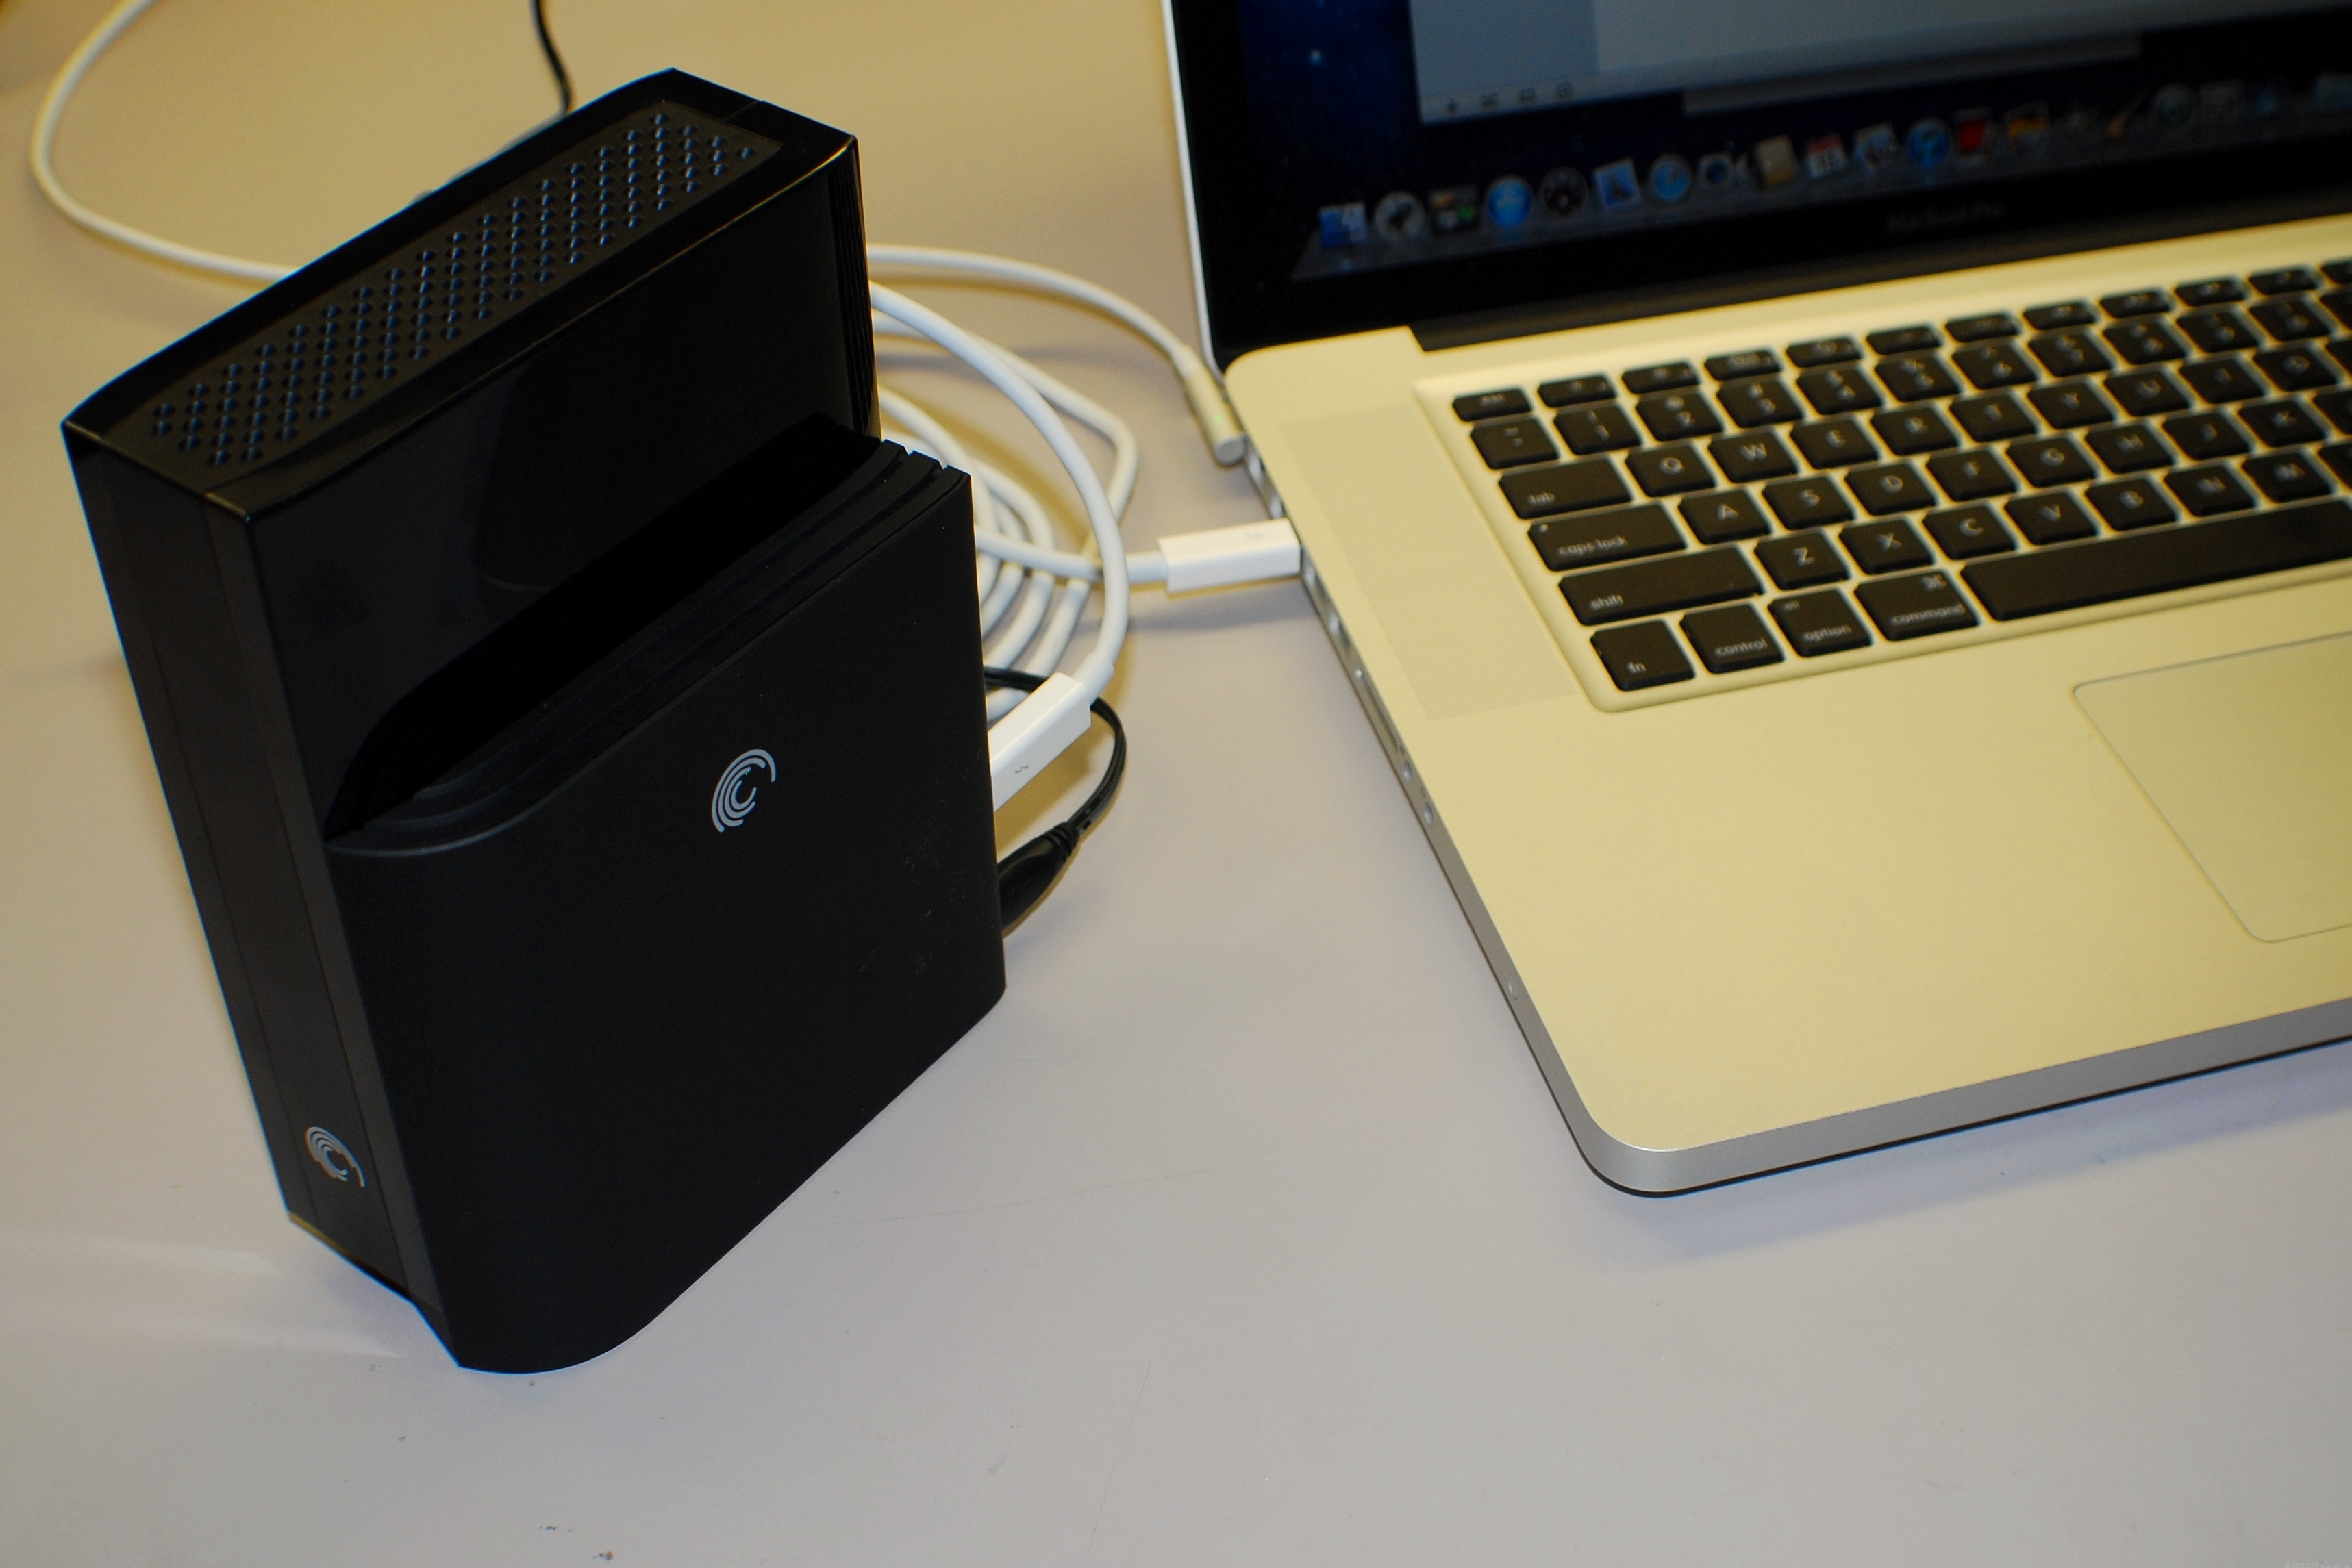 The GoFlex Desk Thunderbolt adapter makes an excellent Thunderbolt storage solution for a supported Mac.